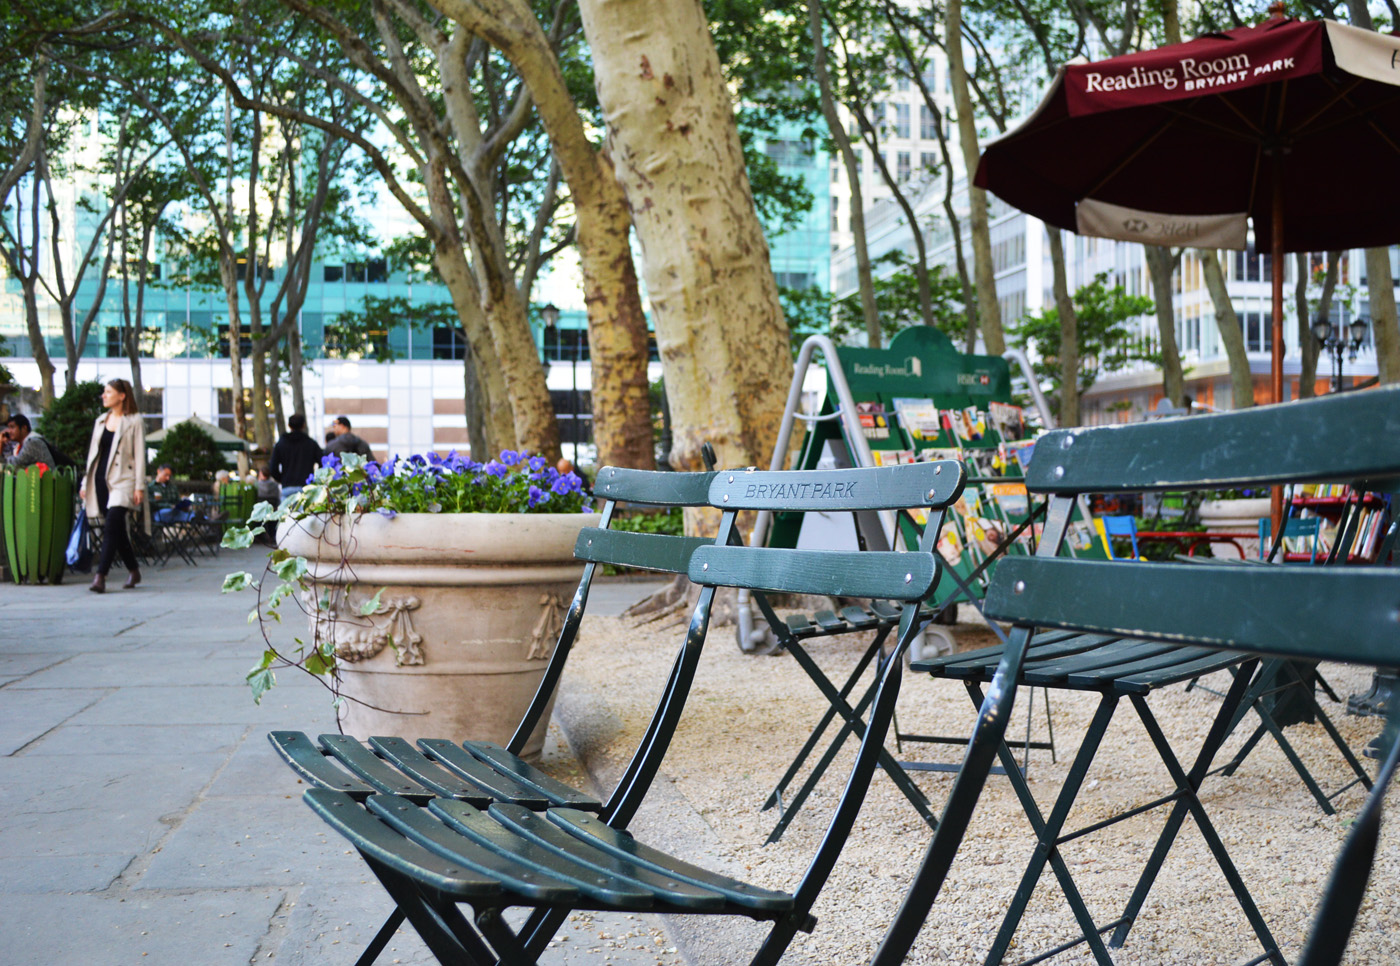 Bryant Park Chairs Reading Room